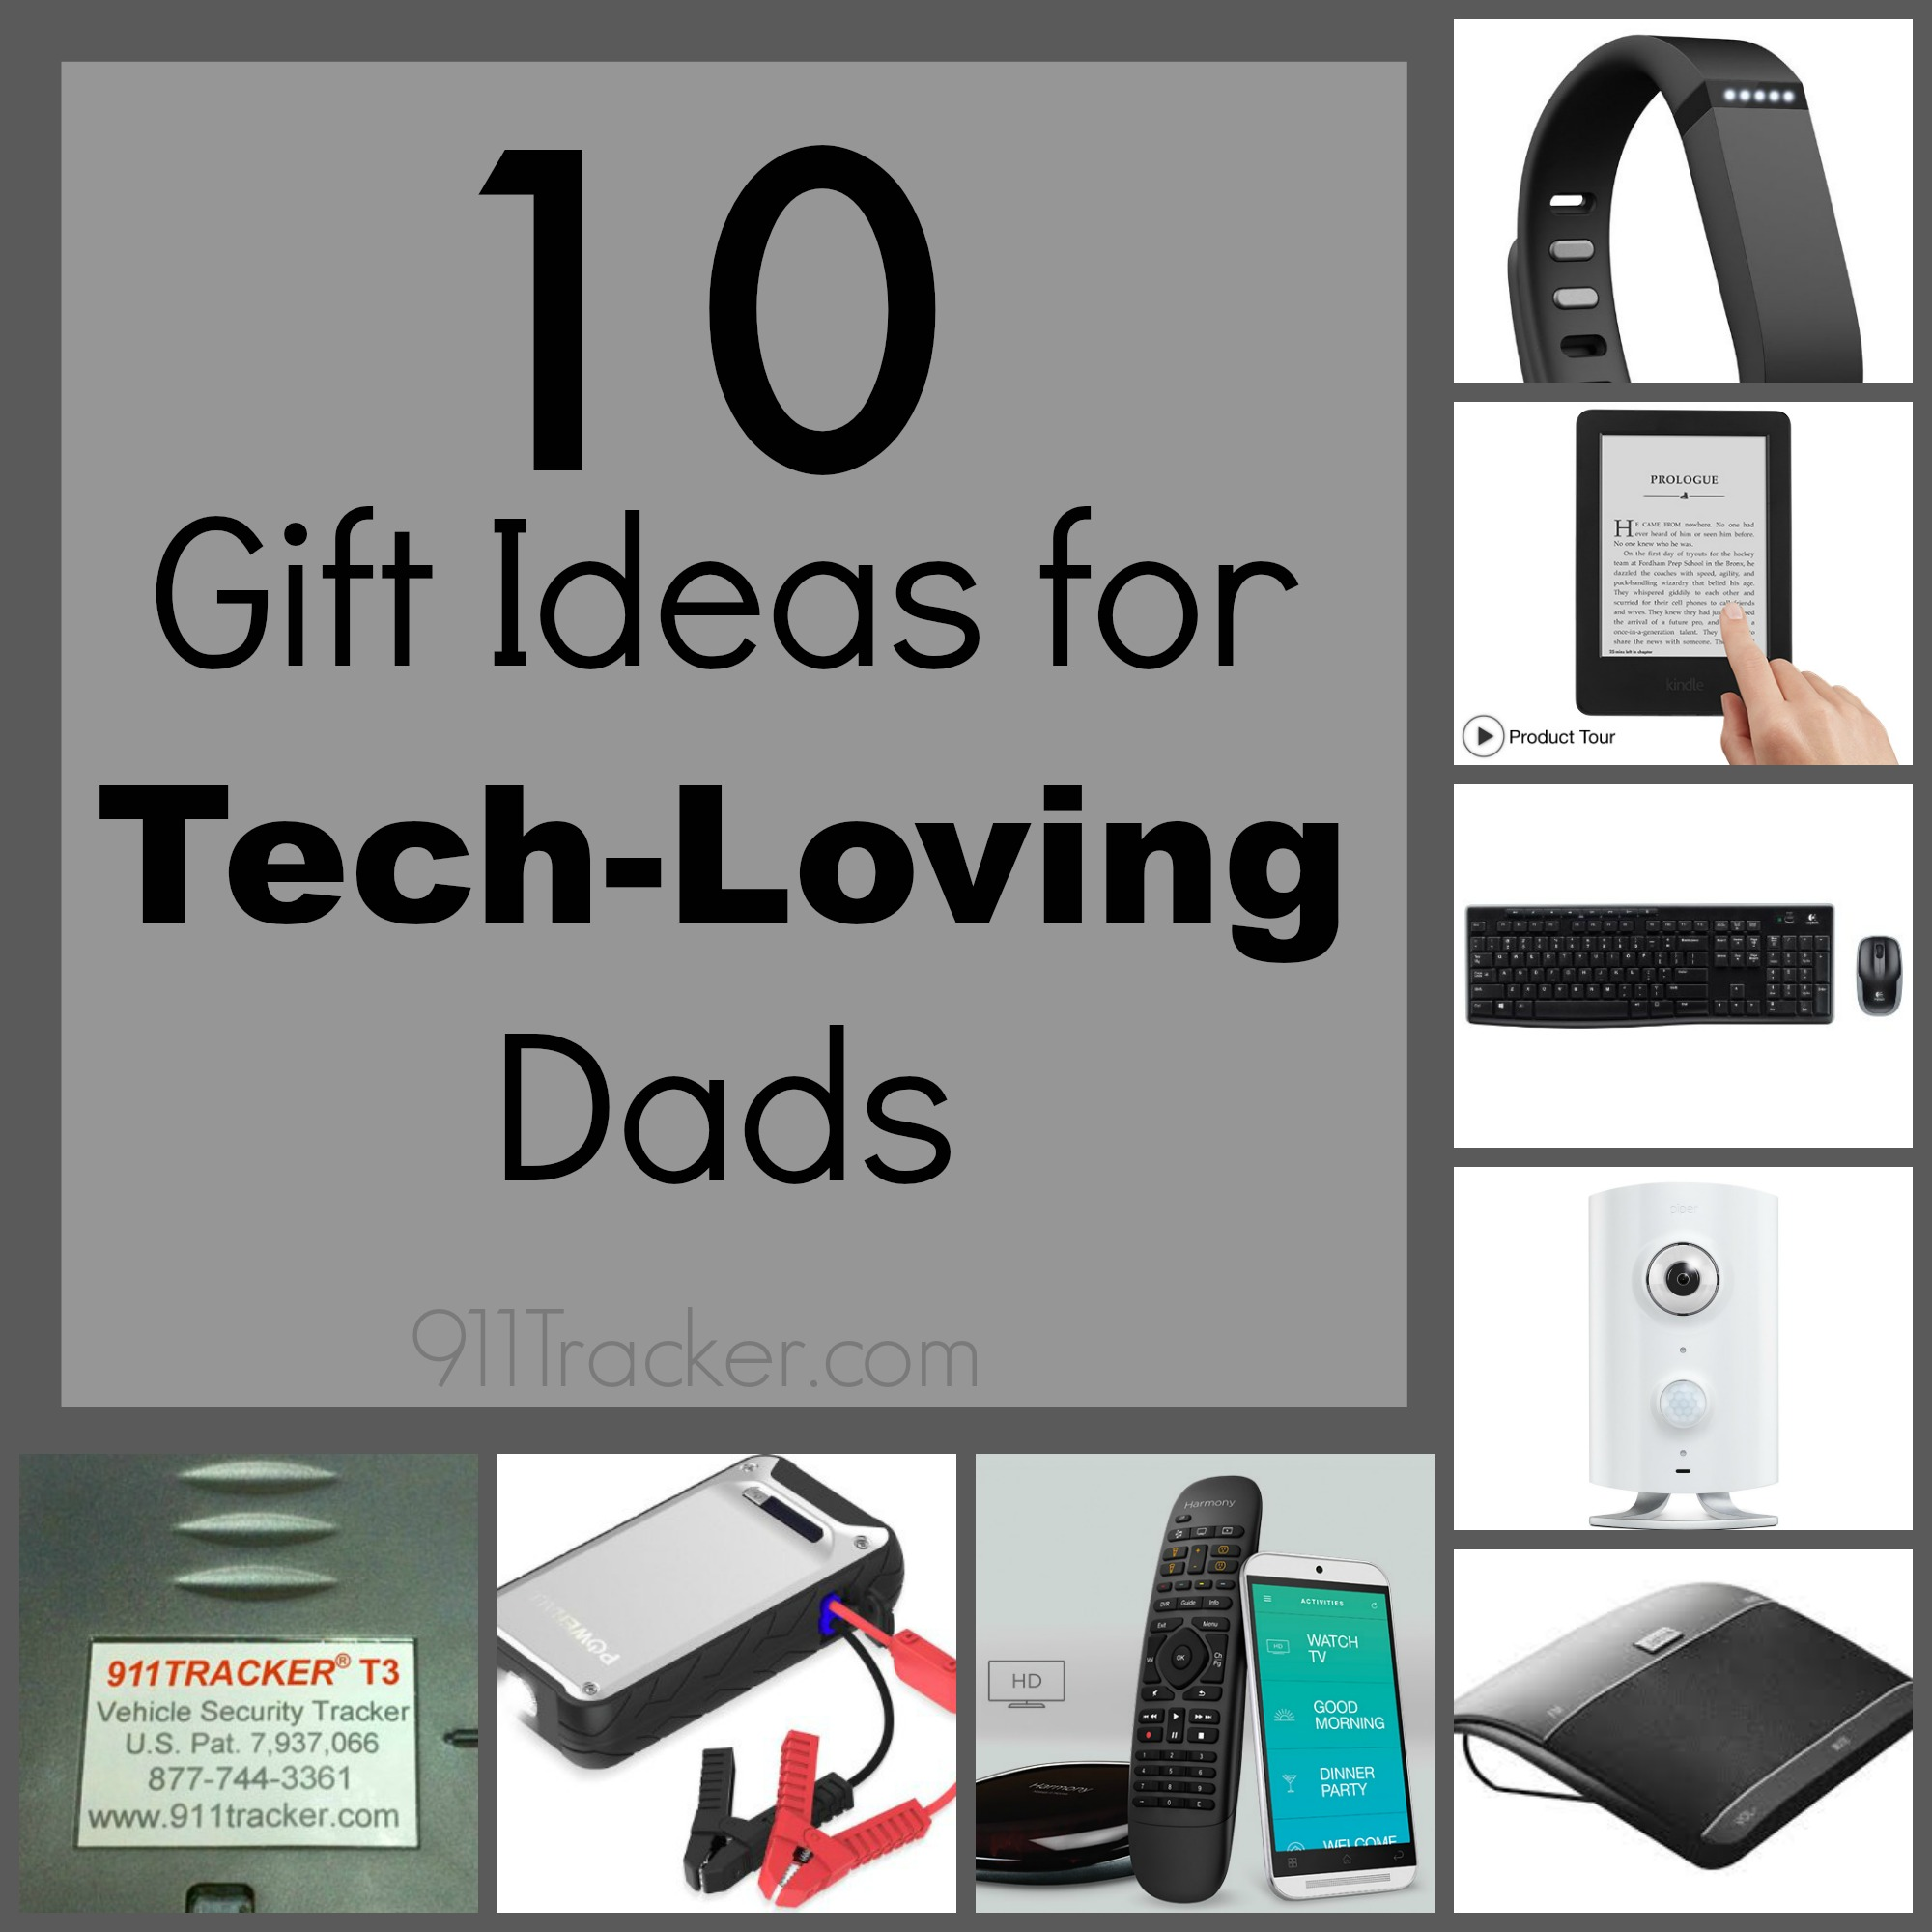 Dad gadgets dad gadgets with dad gadgets cheap review hp for Cool gadgets for dads